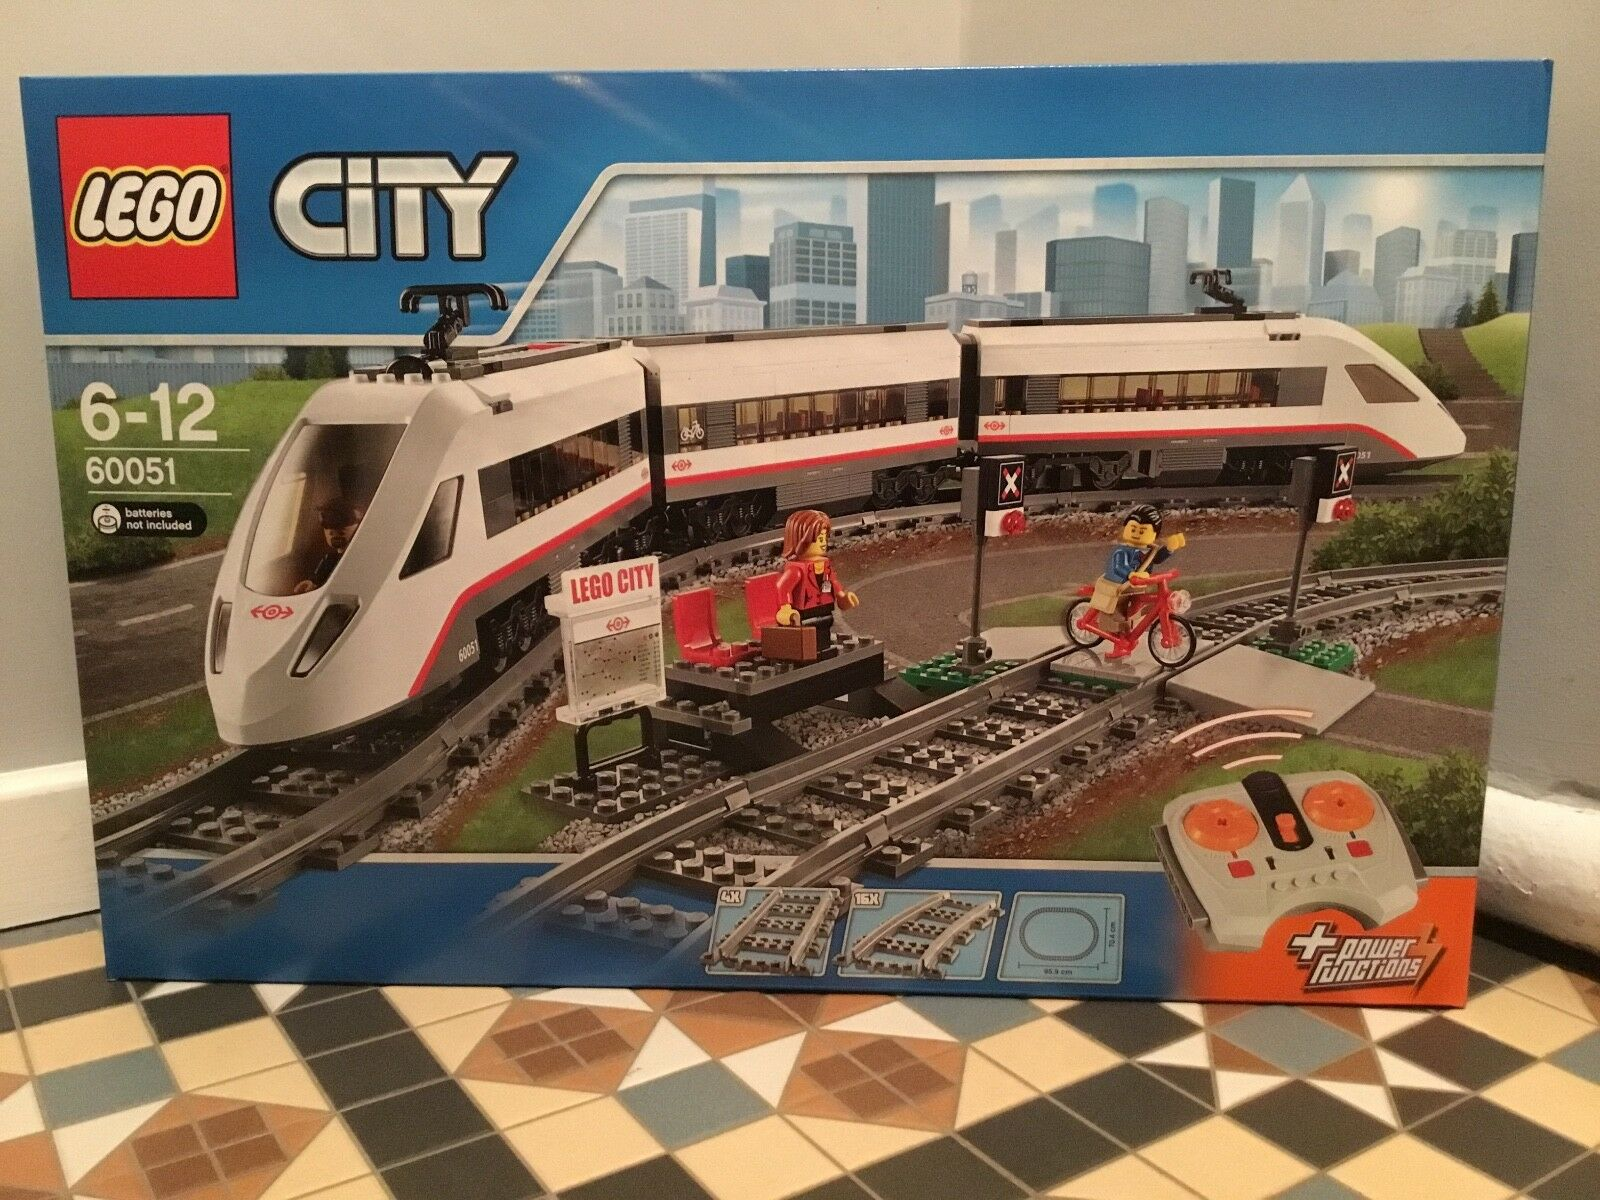 BNIB LEGO 60051 CITY HIGH SPEED PASSENGER TRAIN POWER FUNCTIONS